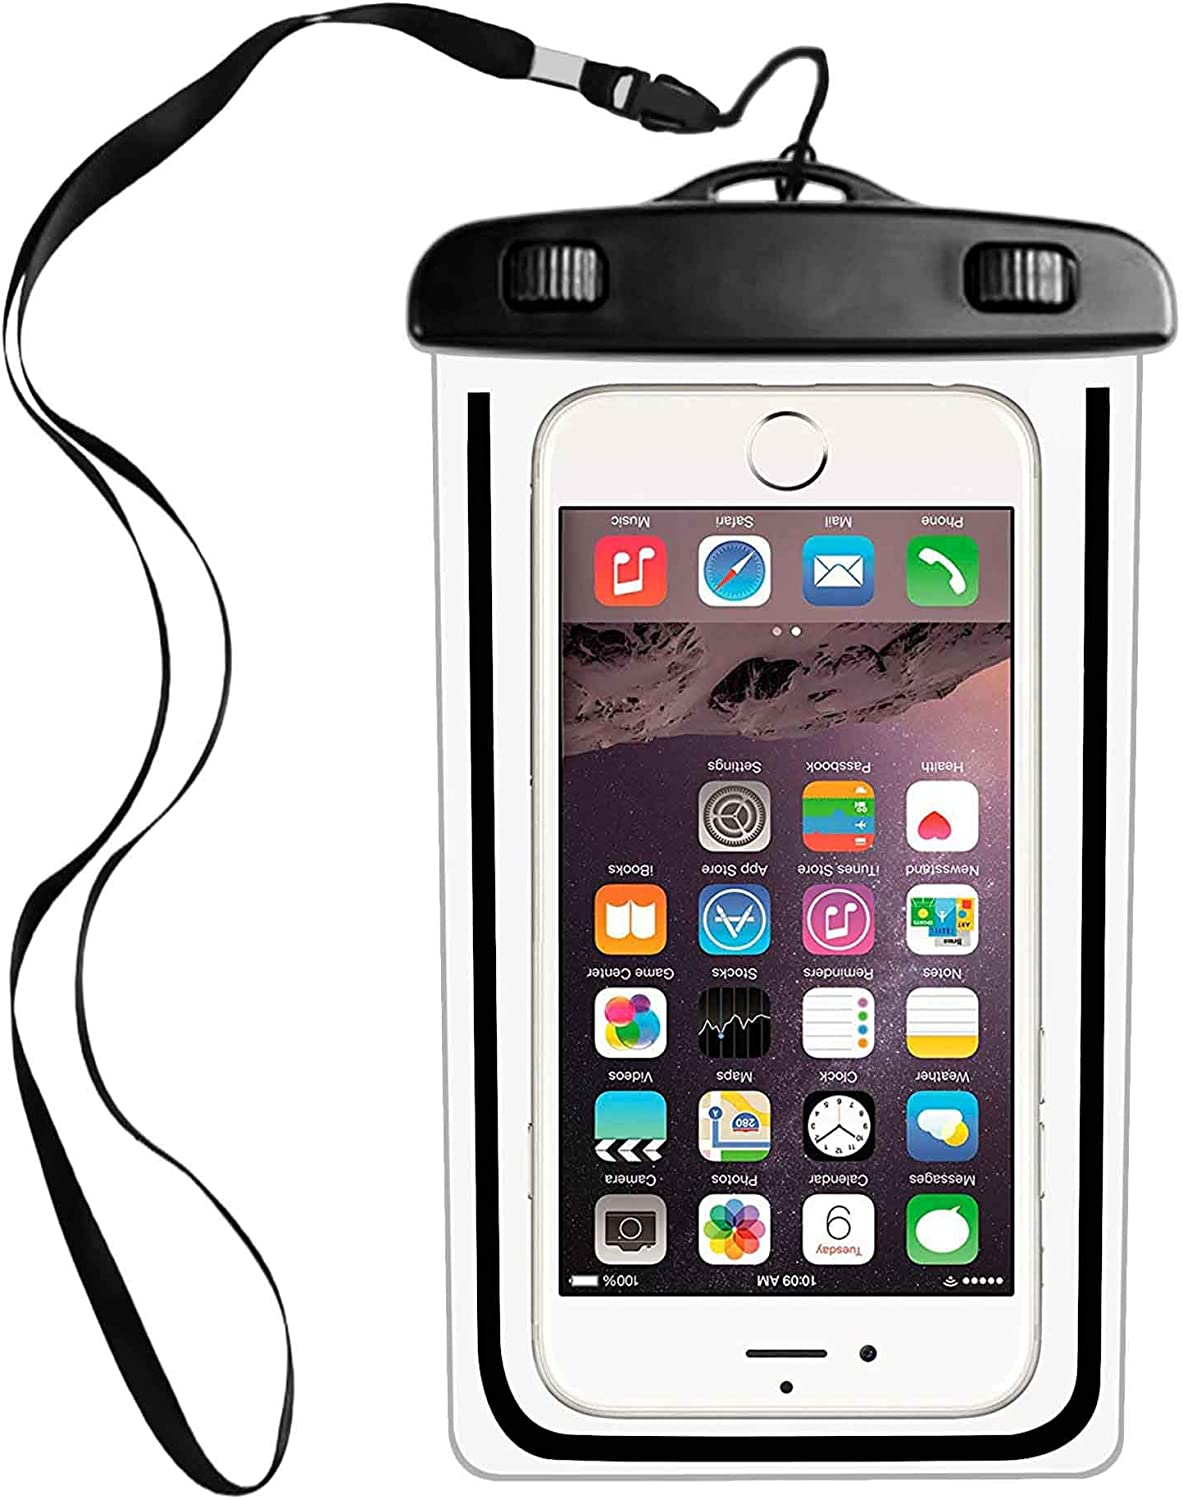 Waterproof Phone Pouch, IPX8 Cellphone Dry Case Bag Compatible with iPhone 11 PRO MAX Xs,XR,XS MAX,X 8,7,6s Plus,SE,Galaxy S9,S8+,s7 Edge LG,Diagonal to 6.3